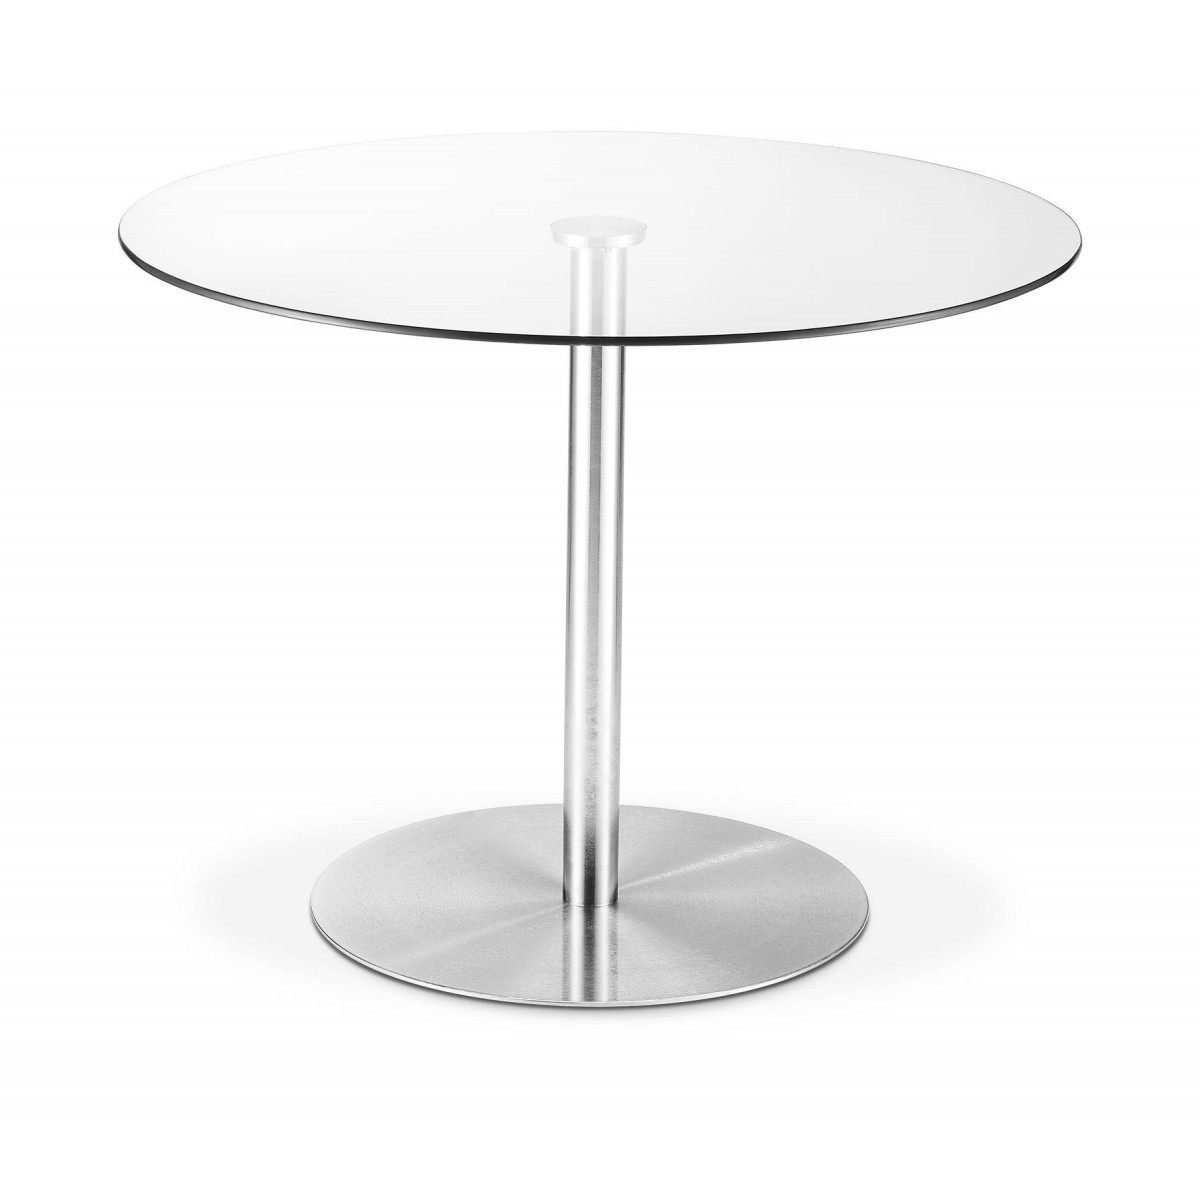 Modern Home – Milan Round Glass Brushed Steel Pedestal Intended For Newest Jazmin Pedestal Dining Tables (View 12 of 15)